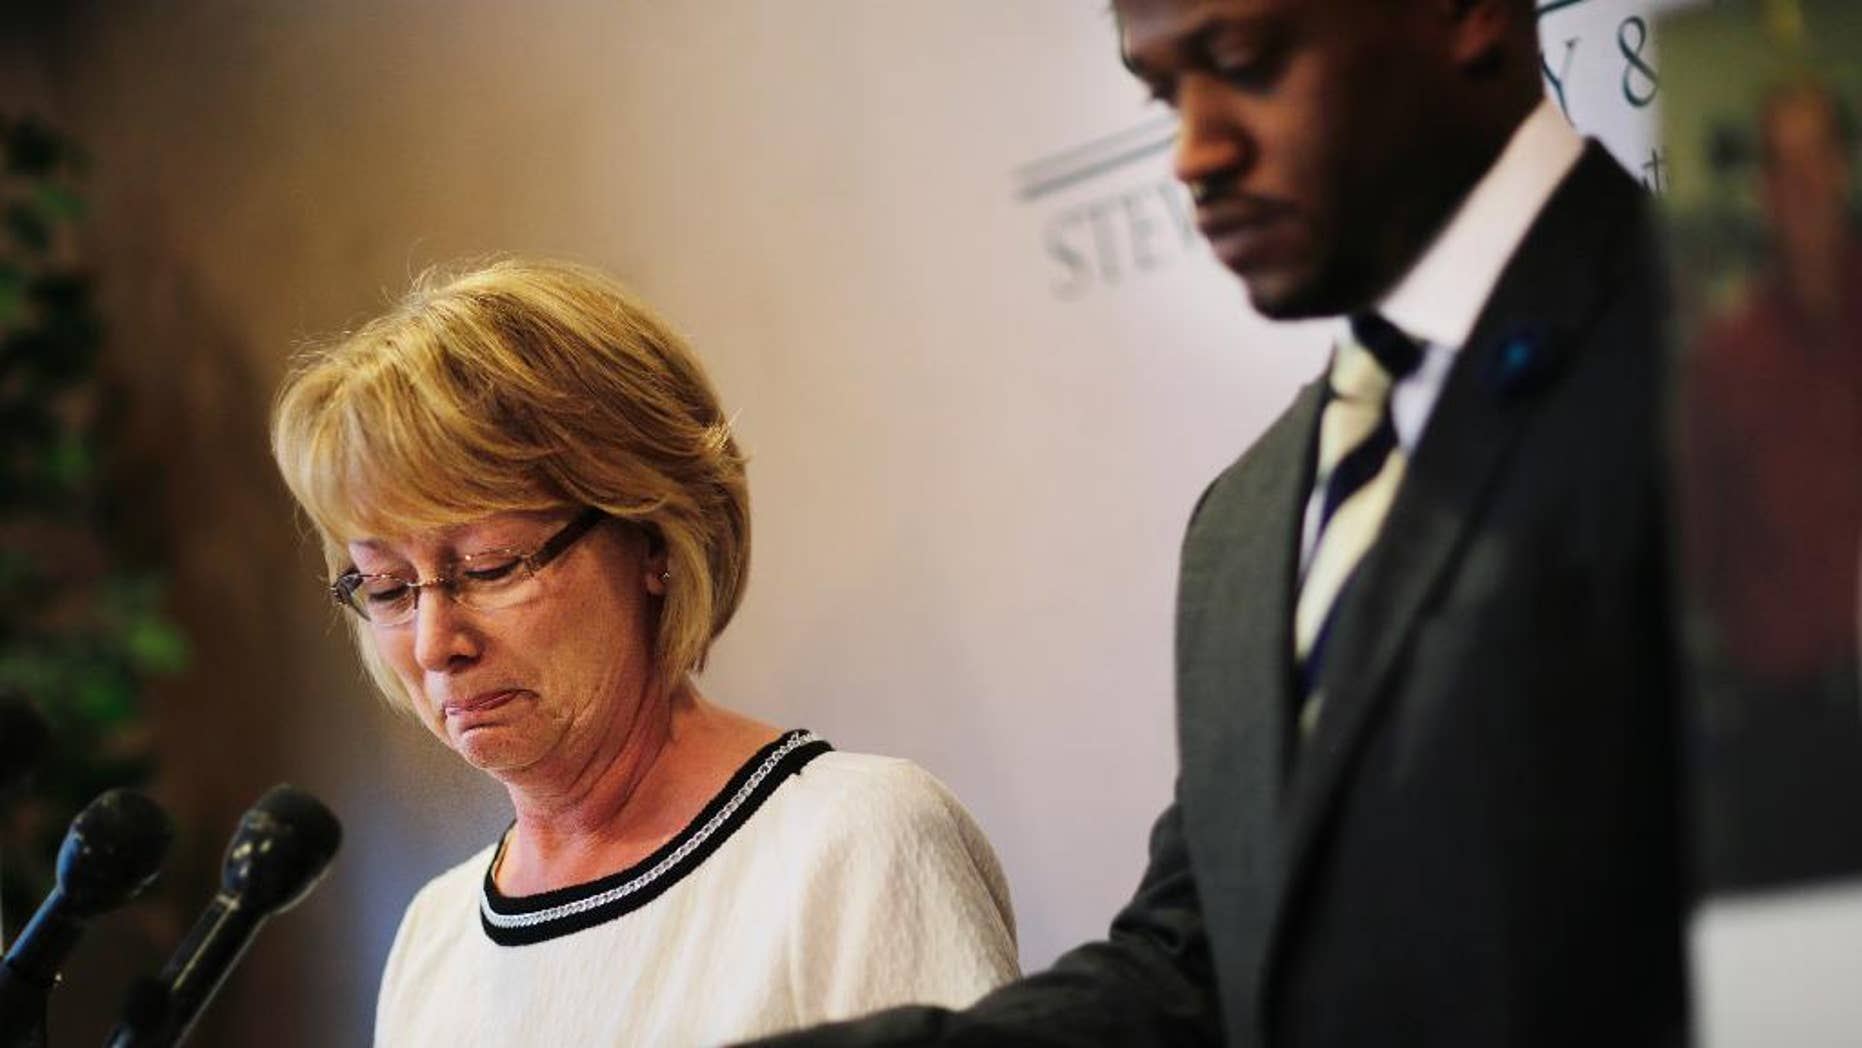 """Mary Ann Sherman, left, weeps during a news conference with her attorney Chris Stewart, right, in response to a video showing her son's struggle with police officers Friday, May 20, 2016, in Atlanta. Two deputies yell """"Stop fighting!"""" and """"He's got my Taser!"""" as they repeatedly stun Chase Sherman, handcuffed in the back of a vehicle, commanding him to relax even as he insists """"I'm dead,"""" shortly before he stops breathing, body-camera video from the incident shows. The video shows the Nov. 20 incident in the back of an SUV in Coweta County, outside Atlanta. Sherman, 32, of Destin, Florida, was pronounced dead at a hospital later that day.(AP Photo/David Goldman)"""